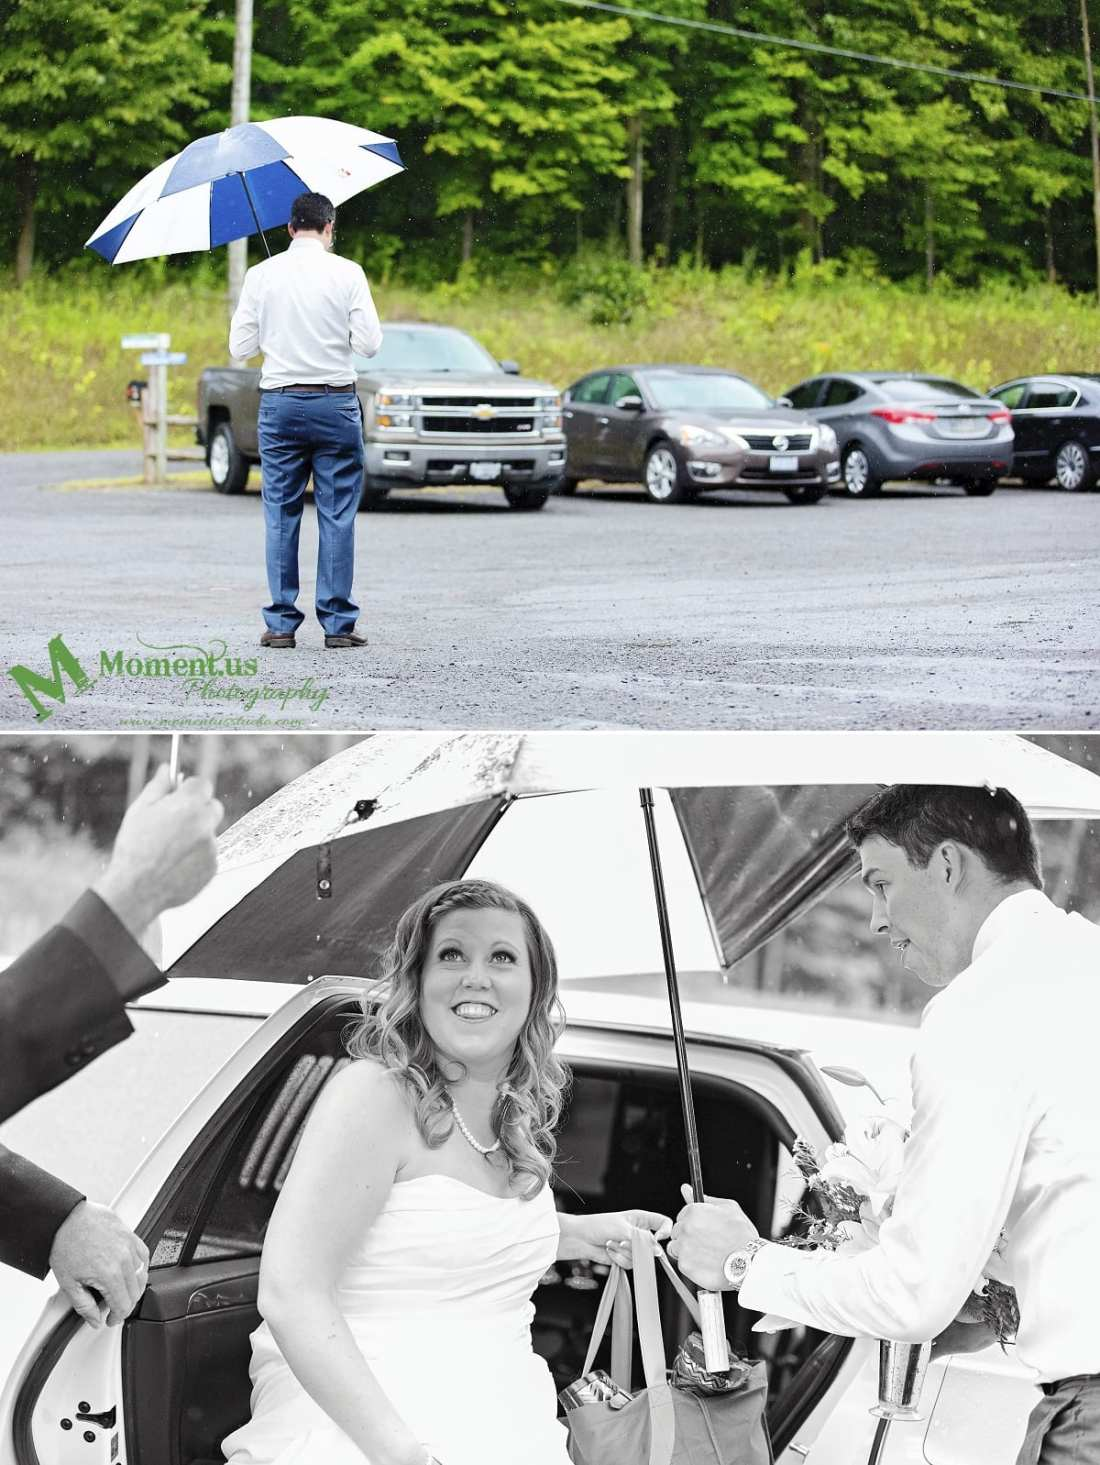 rustic country wedding photos - usher in rain with umbrella